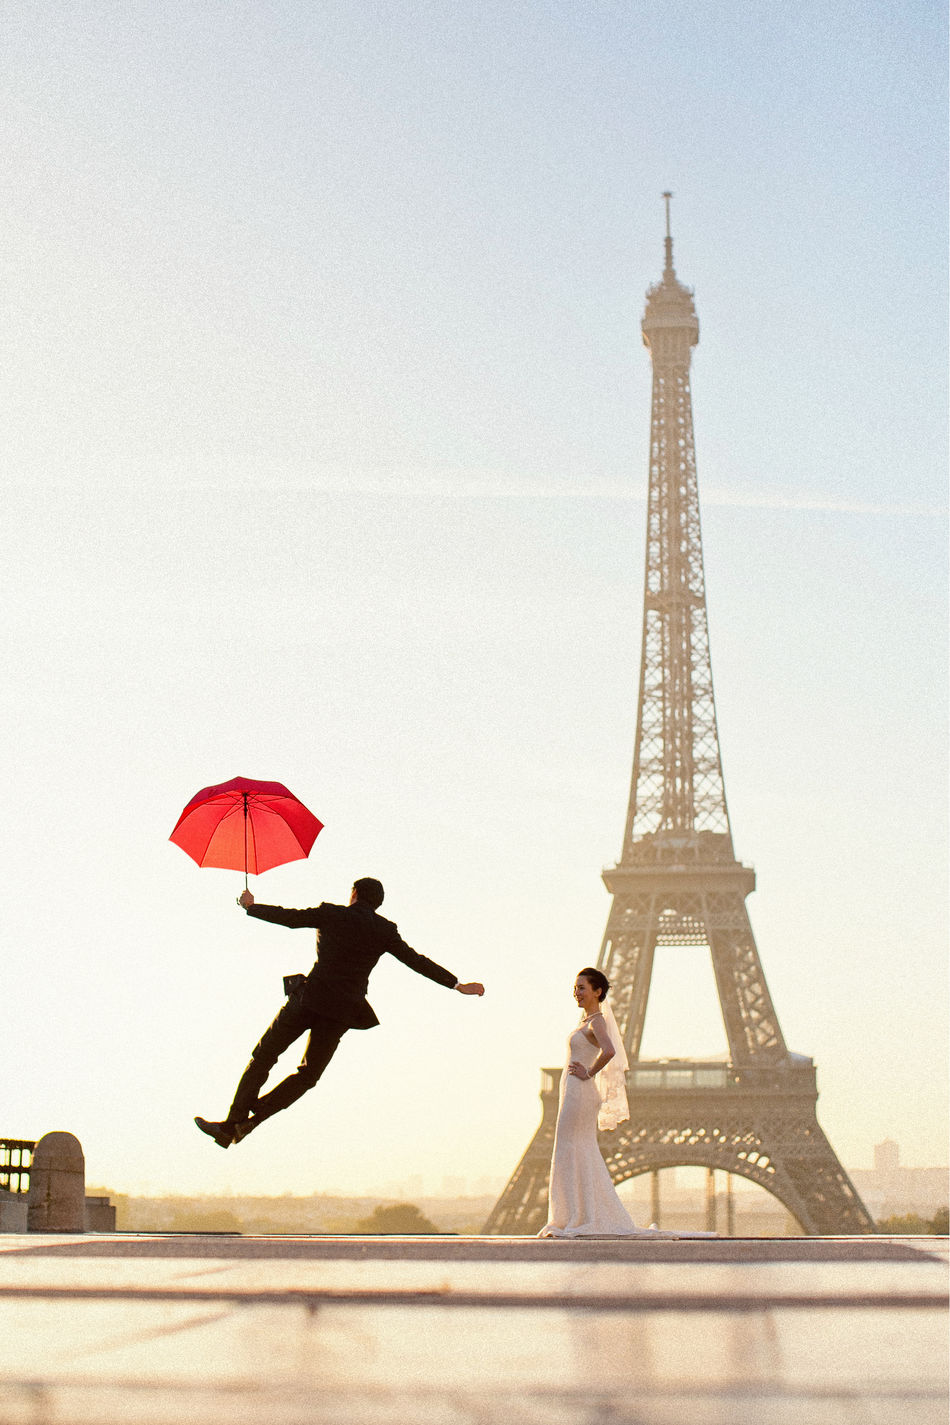 Beautiful stock photos of liebespaar, tower, motion, architecture, leisure activity